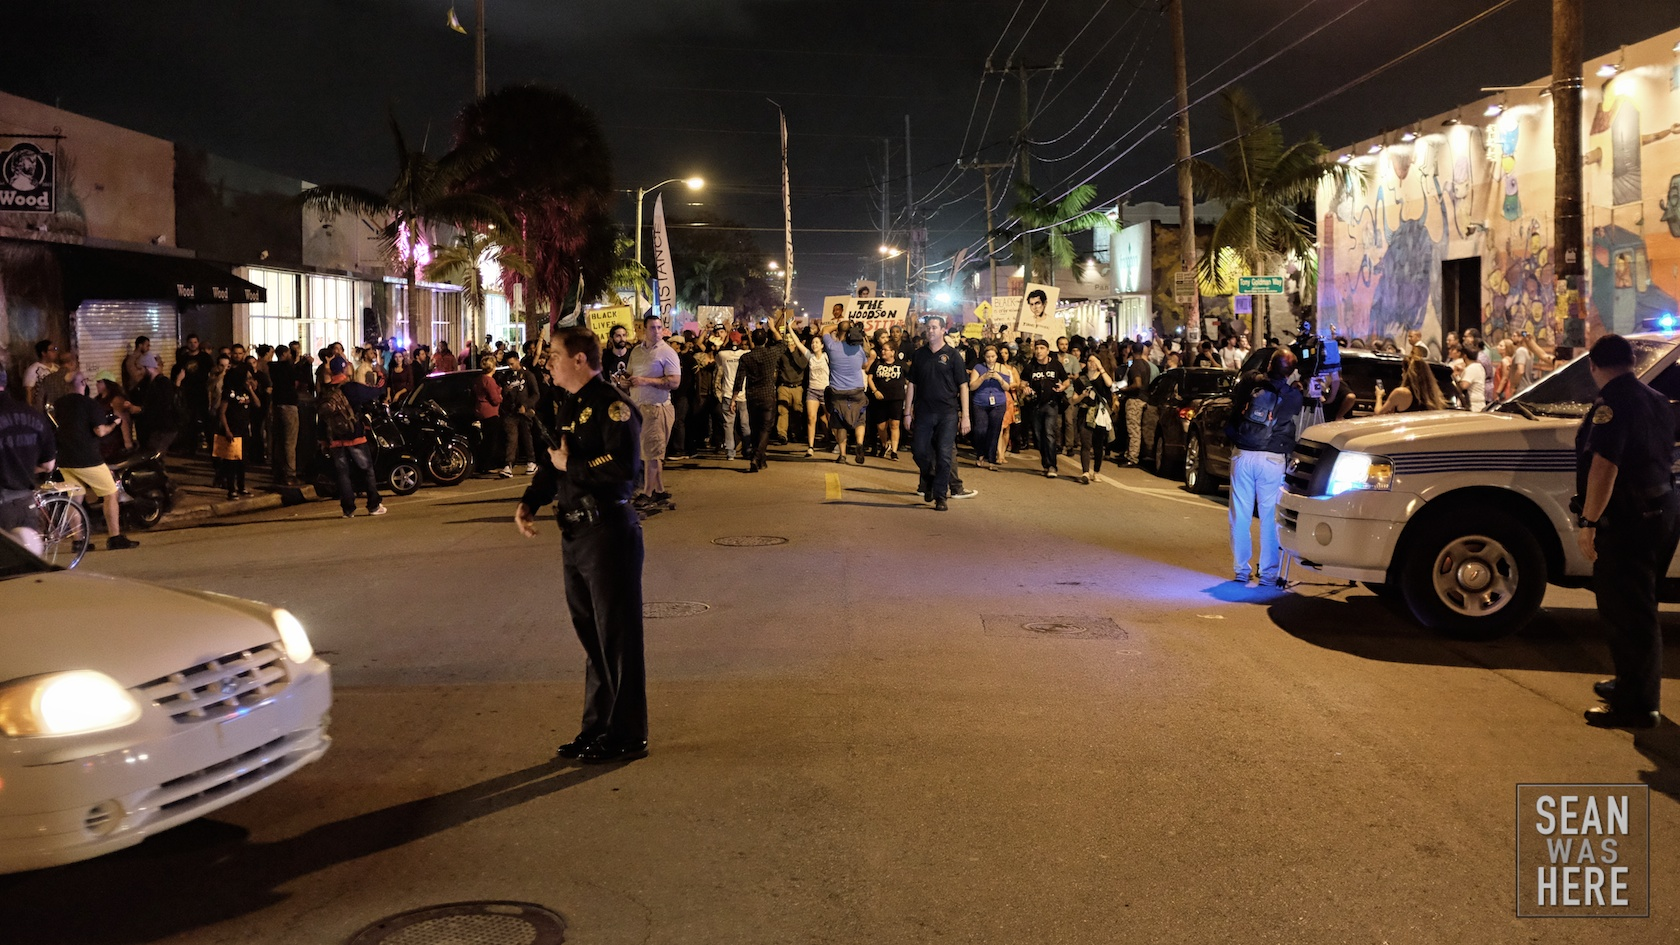 Protesters shut down NW 2nd Ave for some time before moving onto shutting down Interstate 95, blocking all traffic to the beach on the Friday night of Art Basel. Wynwood Miami